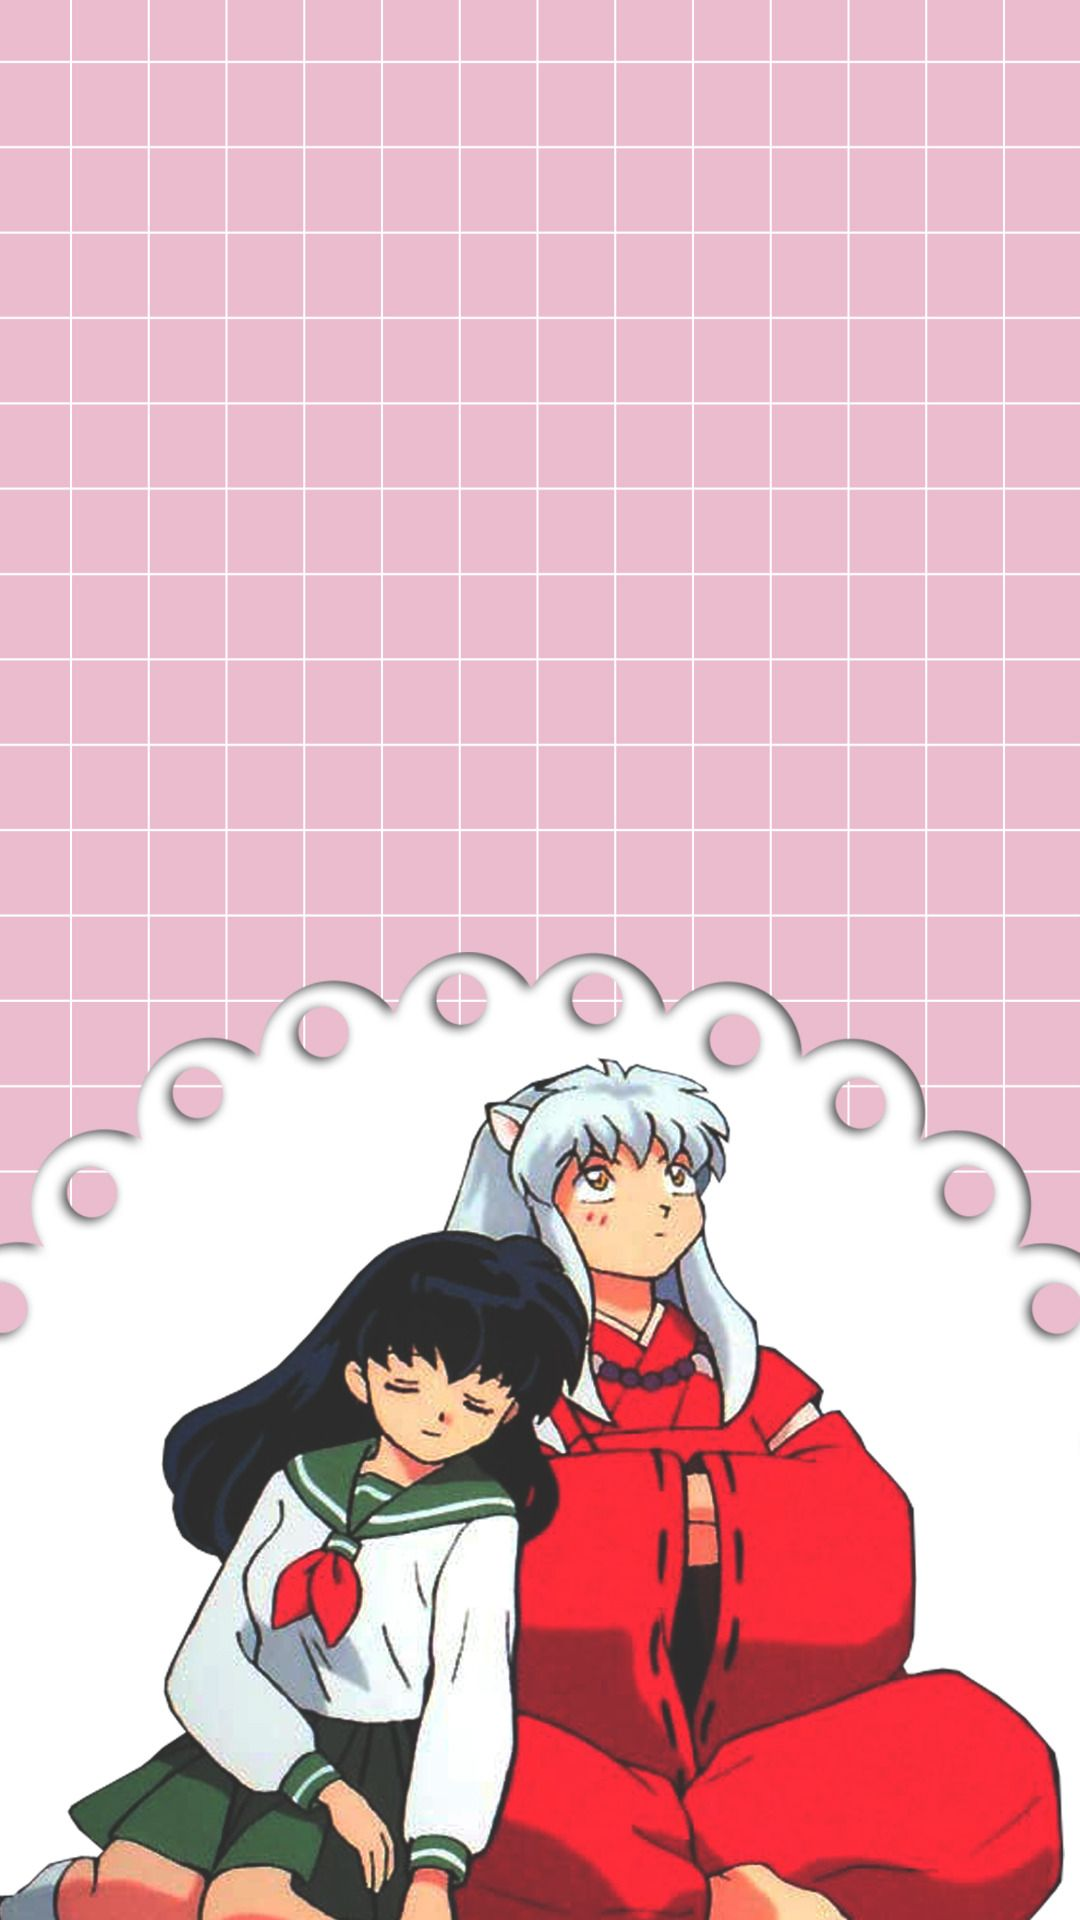 Inuyasha If You Downloaded Rb Or Like Si Descargaste Dale Rb O Like Inuyasha Cute Anime Wallpaper Anime Wallpaper Iphone